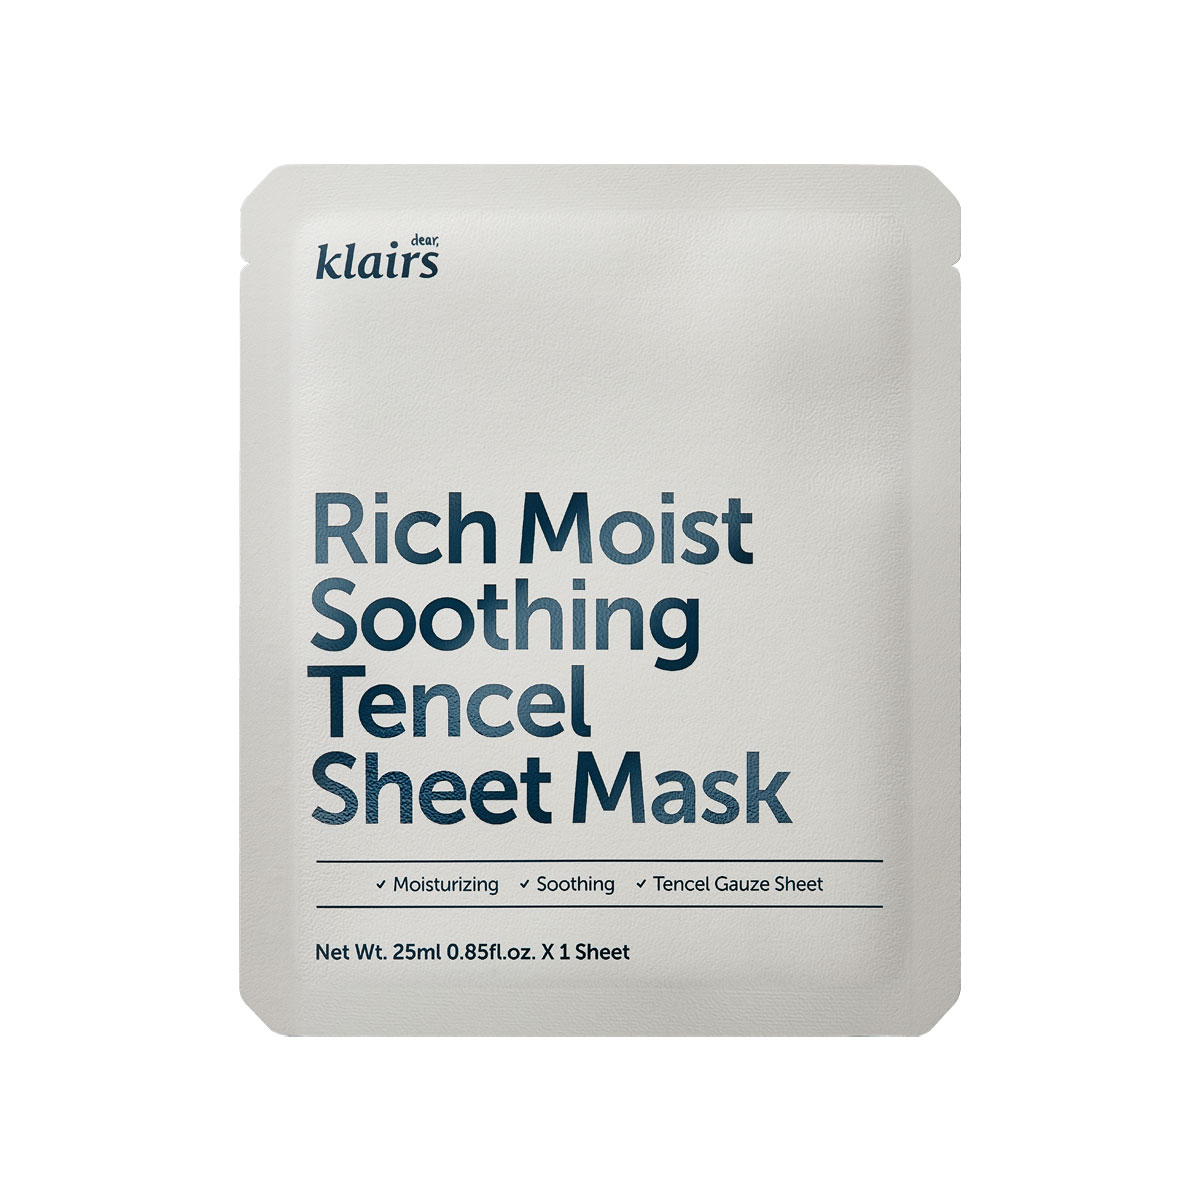 KLAIRS Rich Moist Sooting Tencel Sheet Mask